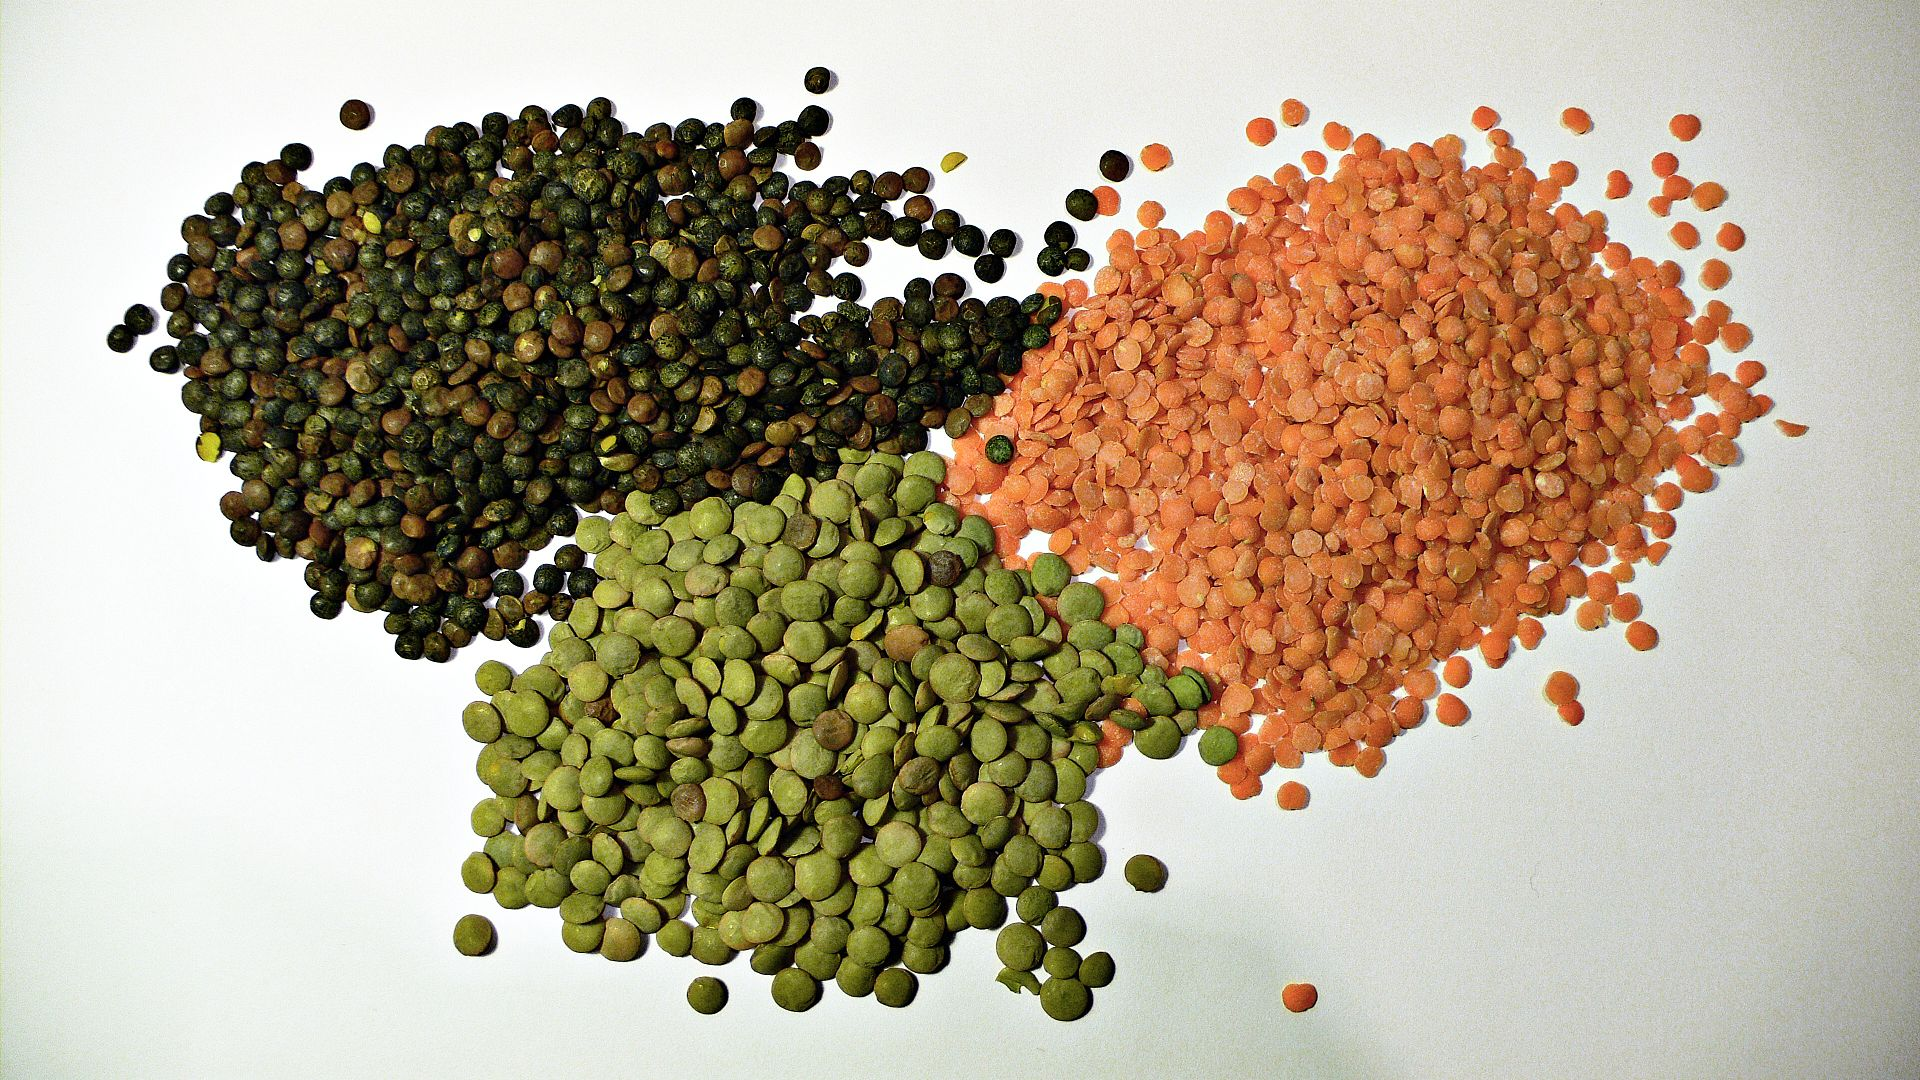 """Source: 3 types of lentil"""". Licensed under CC BY-SA 2.0 via Wikimedia Commons."""